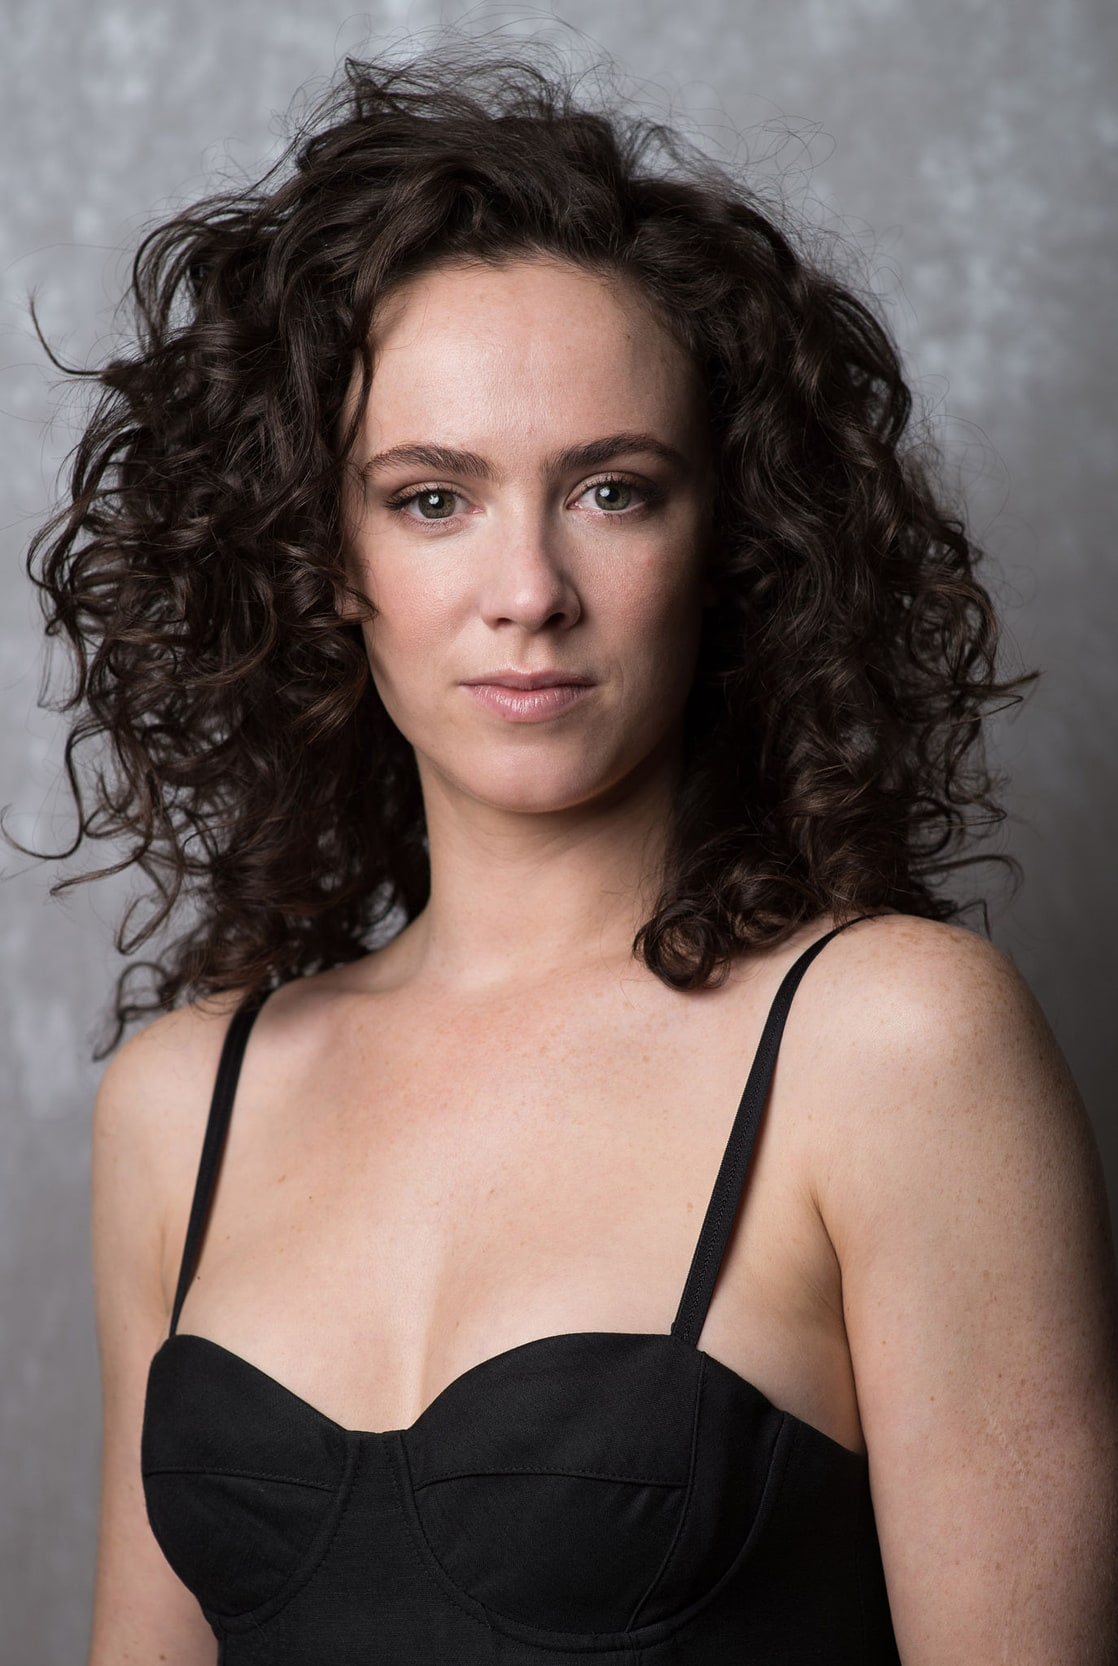 Amy Manson nudes (88 photo), Topless, Bikini, Instagram, braless 2015